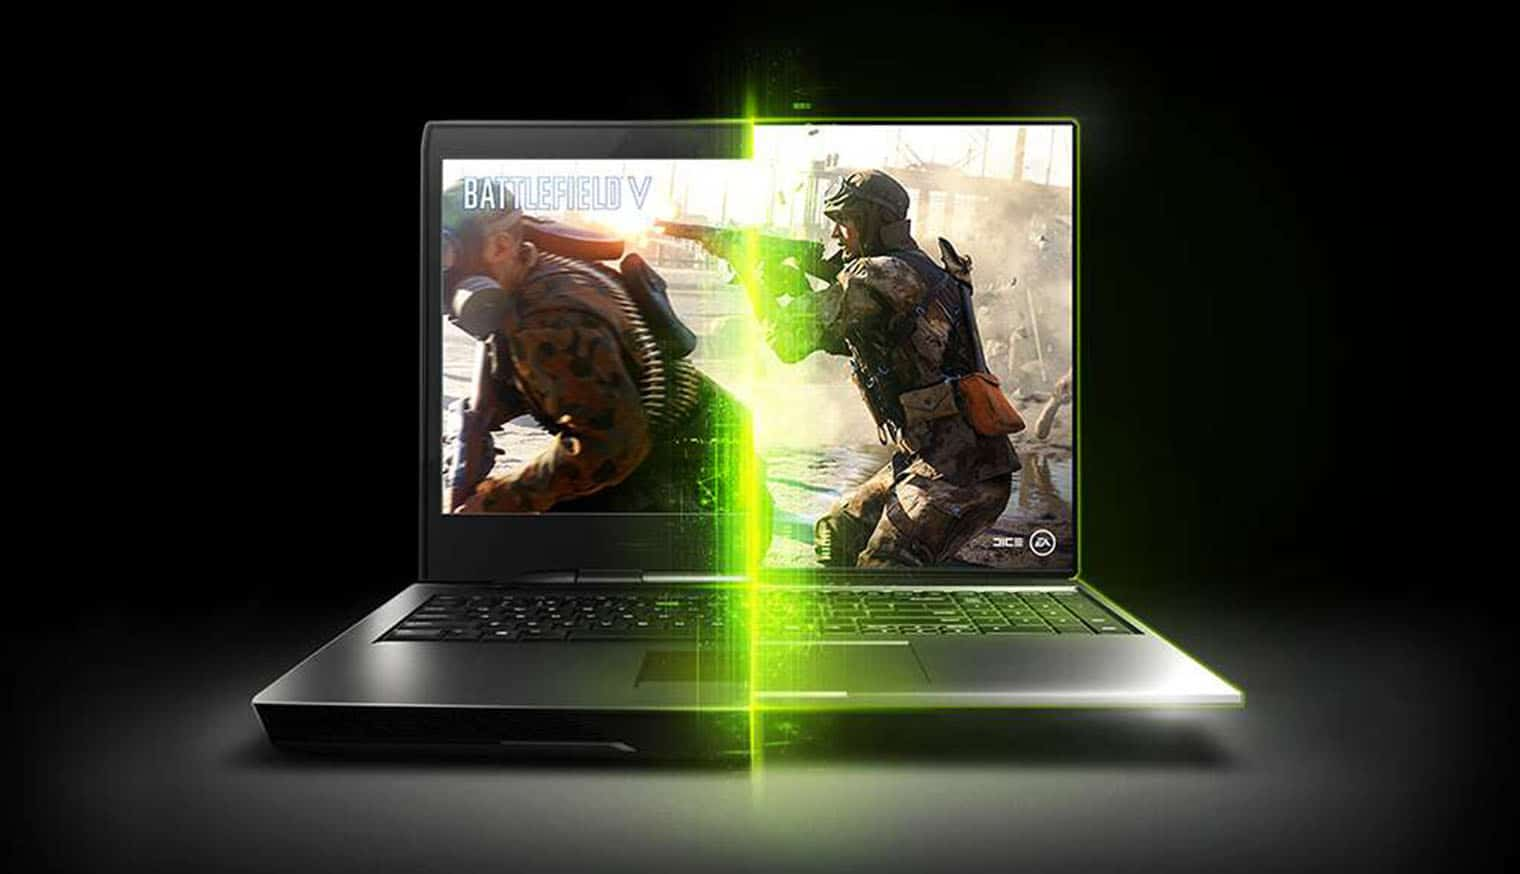 geforce rtx super laptops launched in april